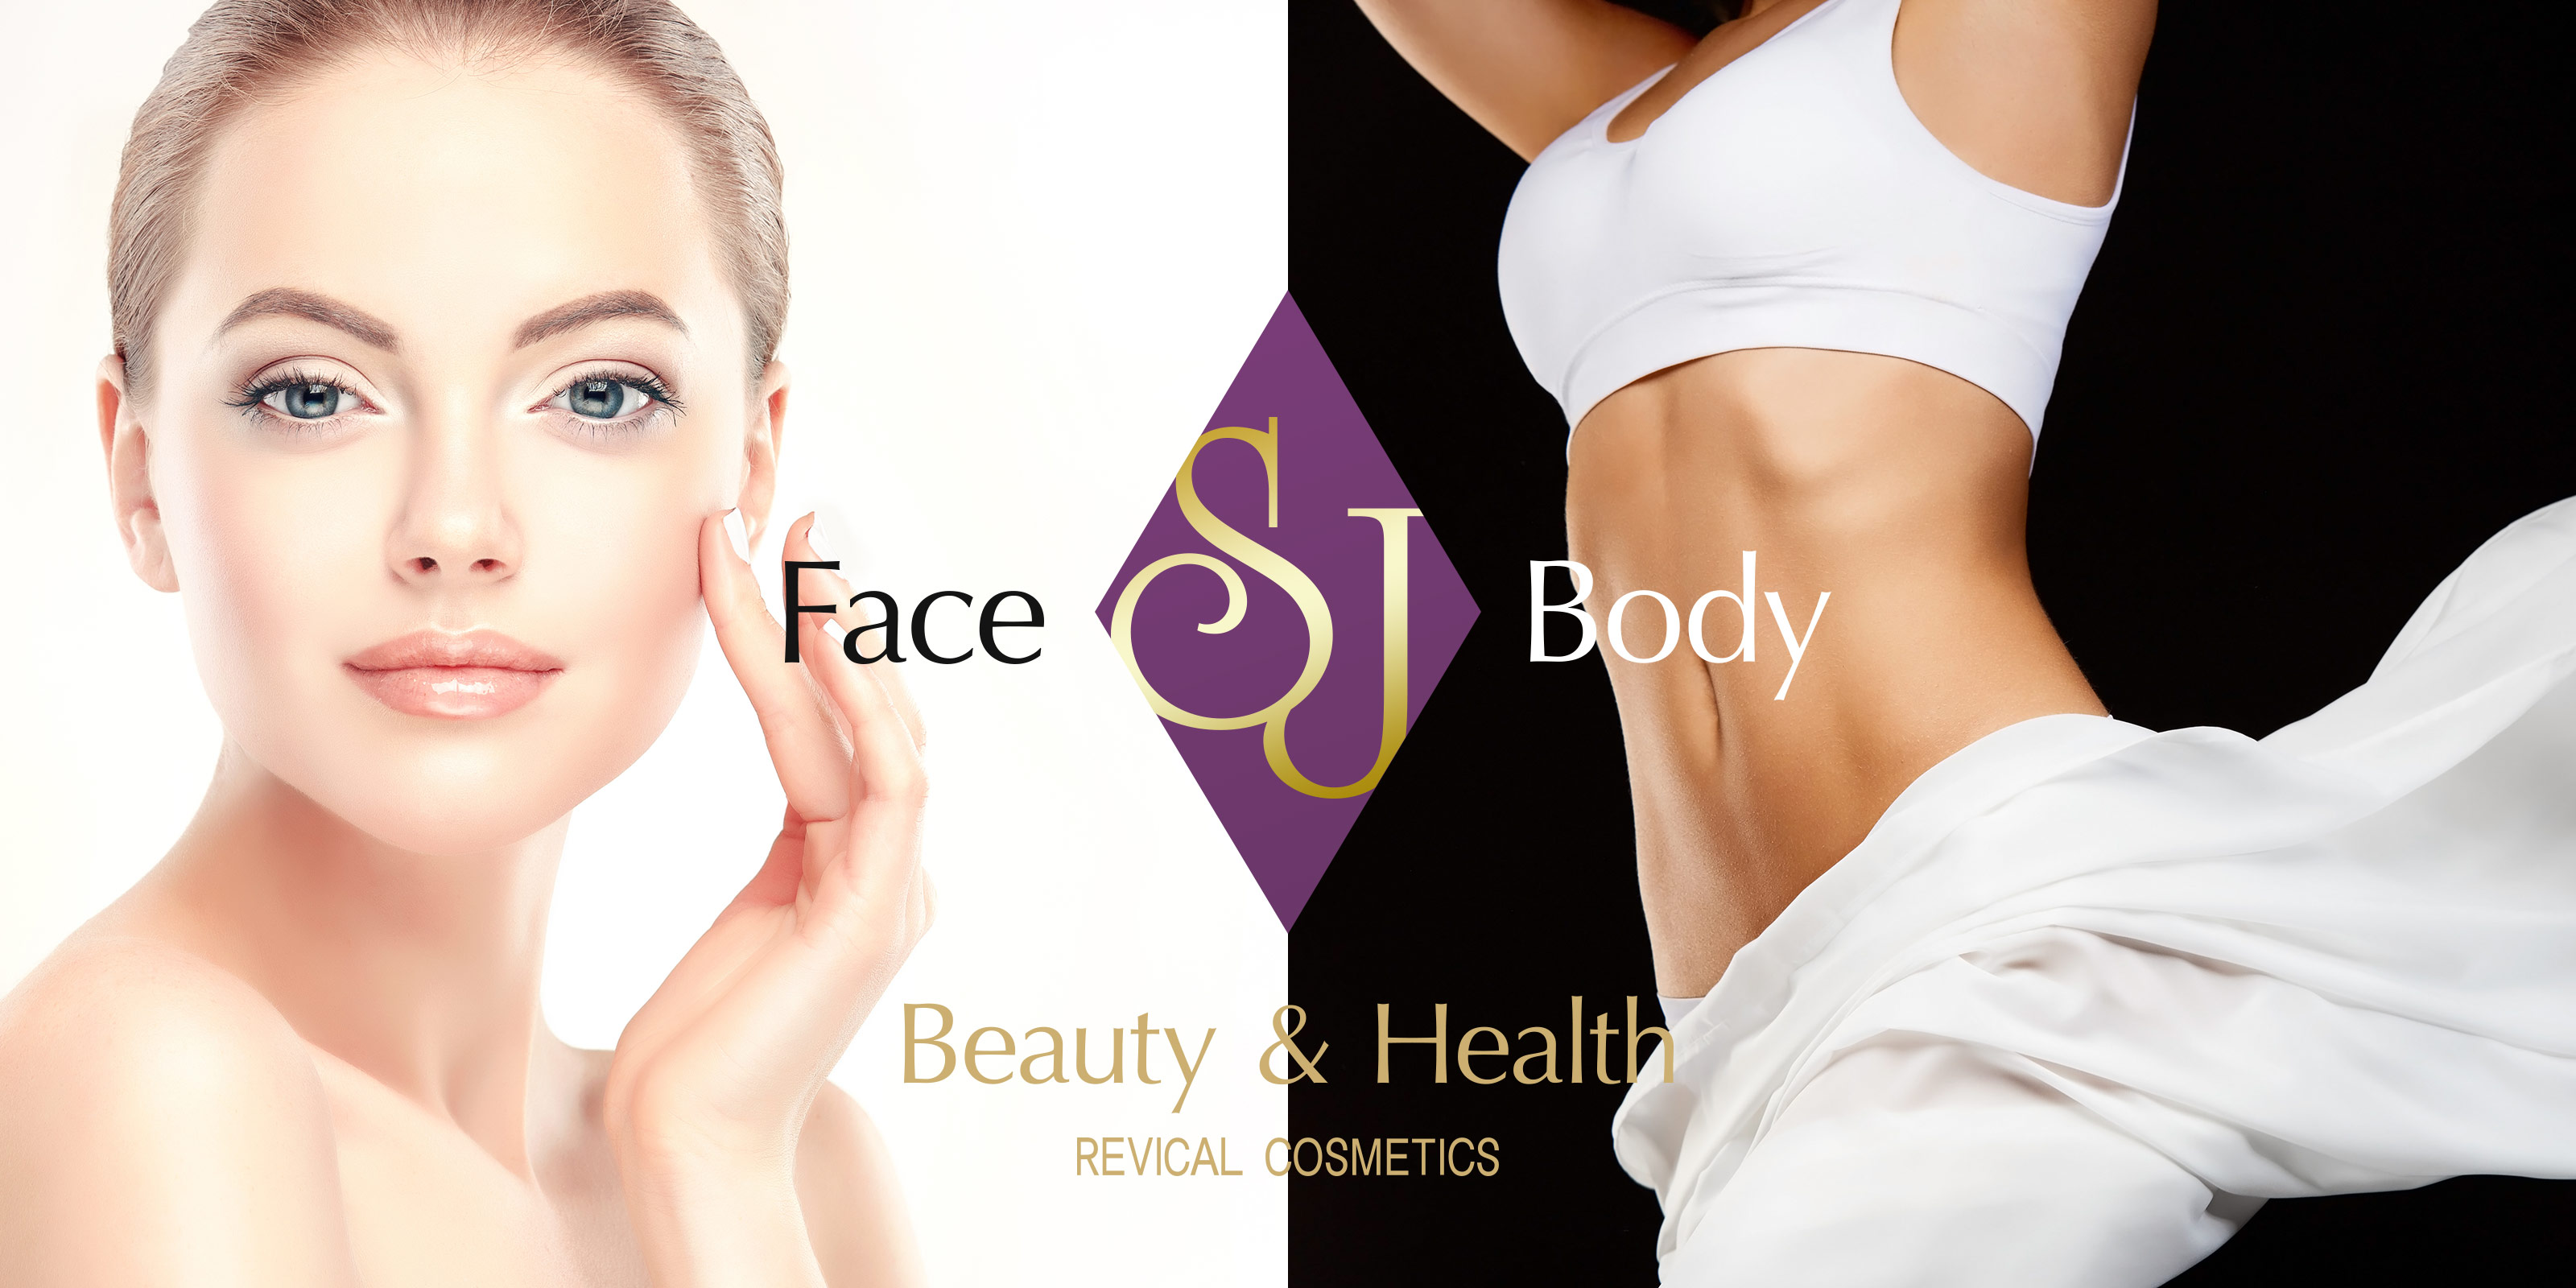 SALANJEE / Beauty & Health - REVICAL COSMETICS